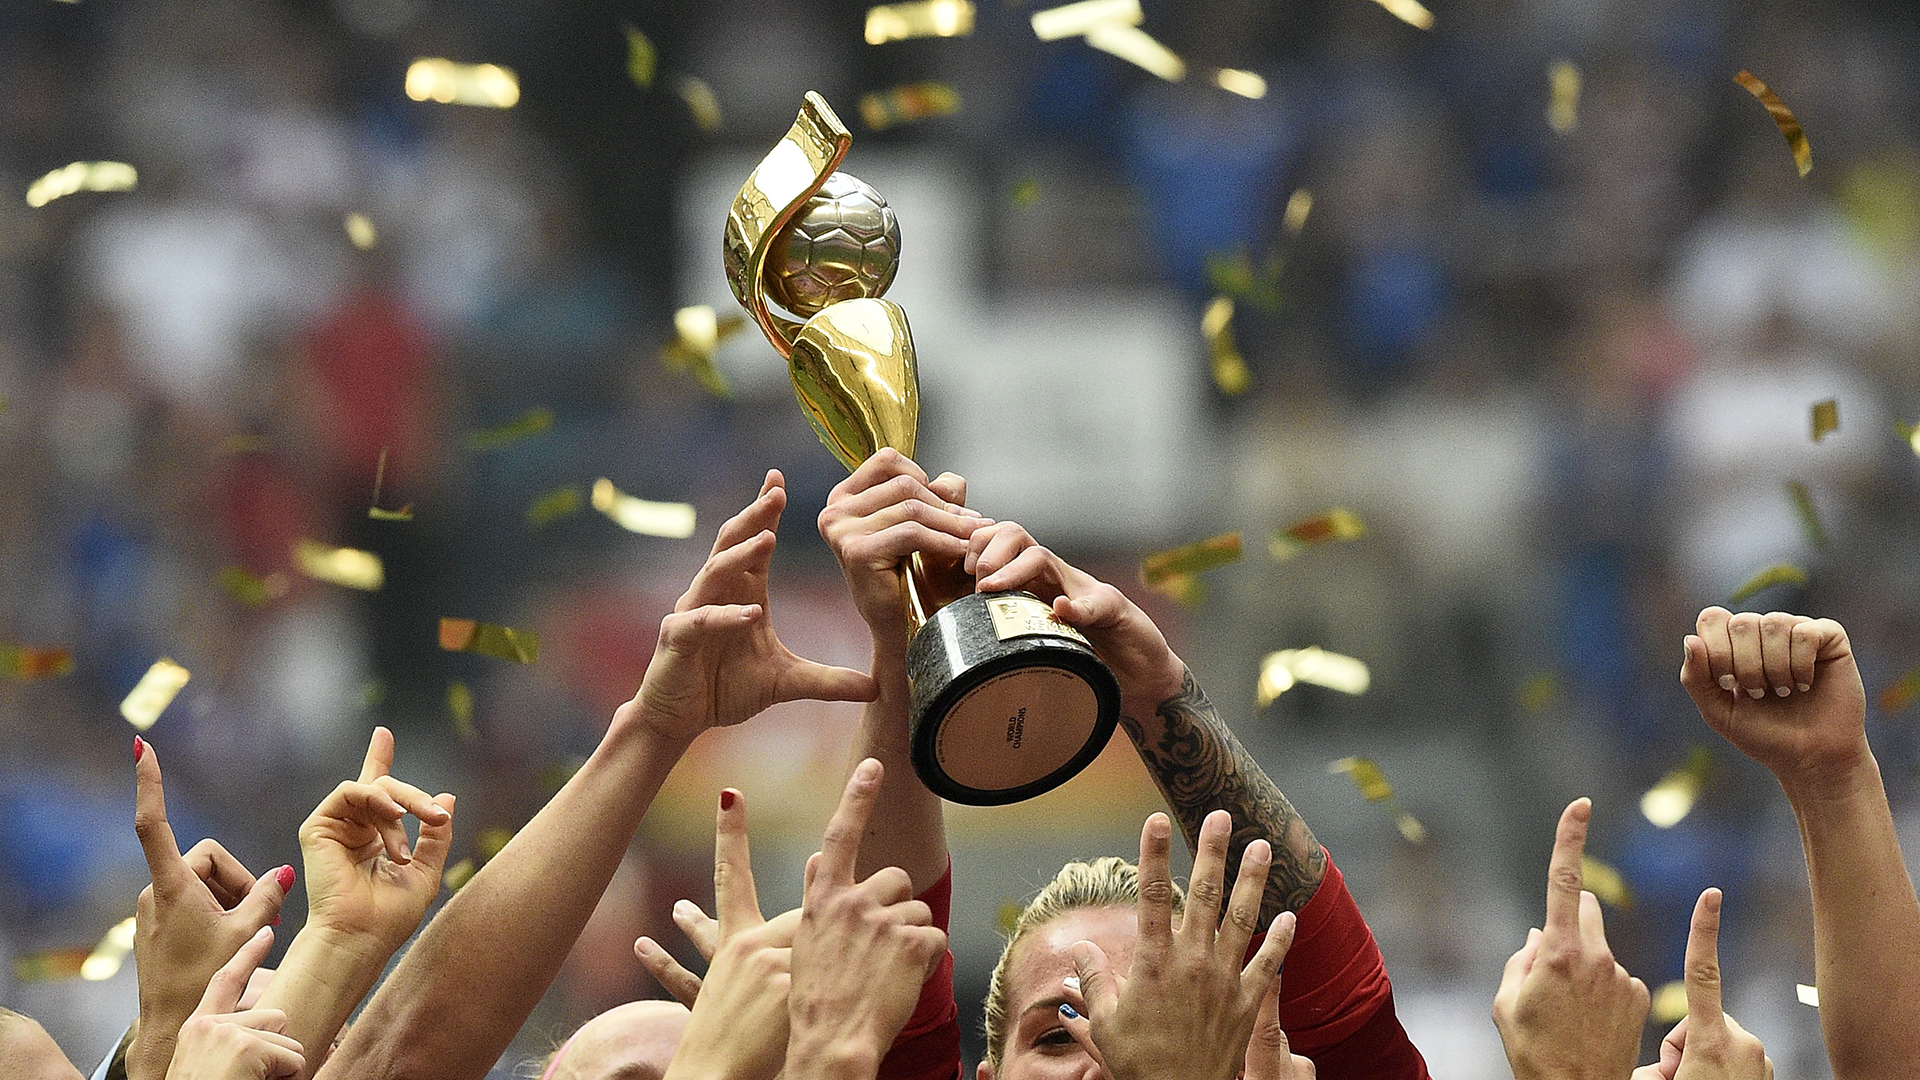 Women's World Cup trophy 2015 USWNT